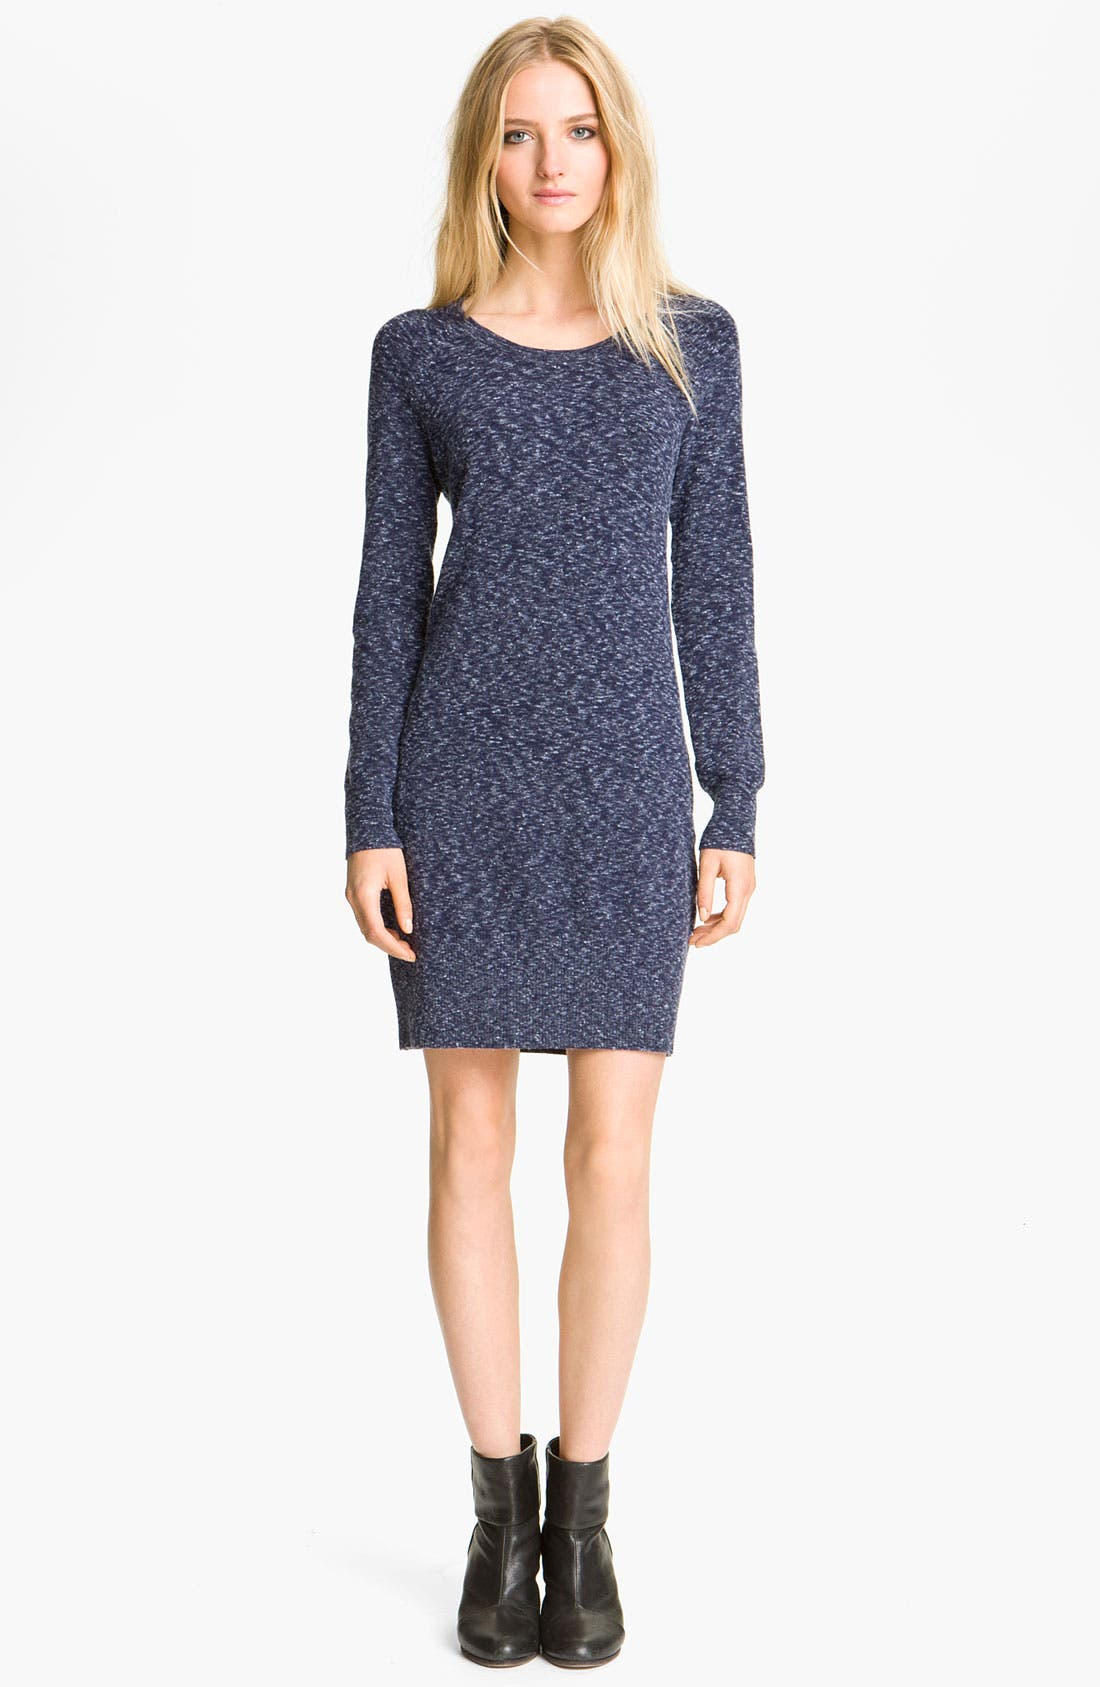 Alternate Image 1 Selected - rag & bone/KNIT 'Lily' Dress